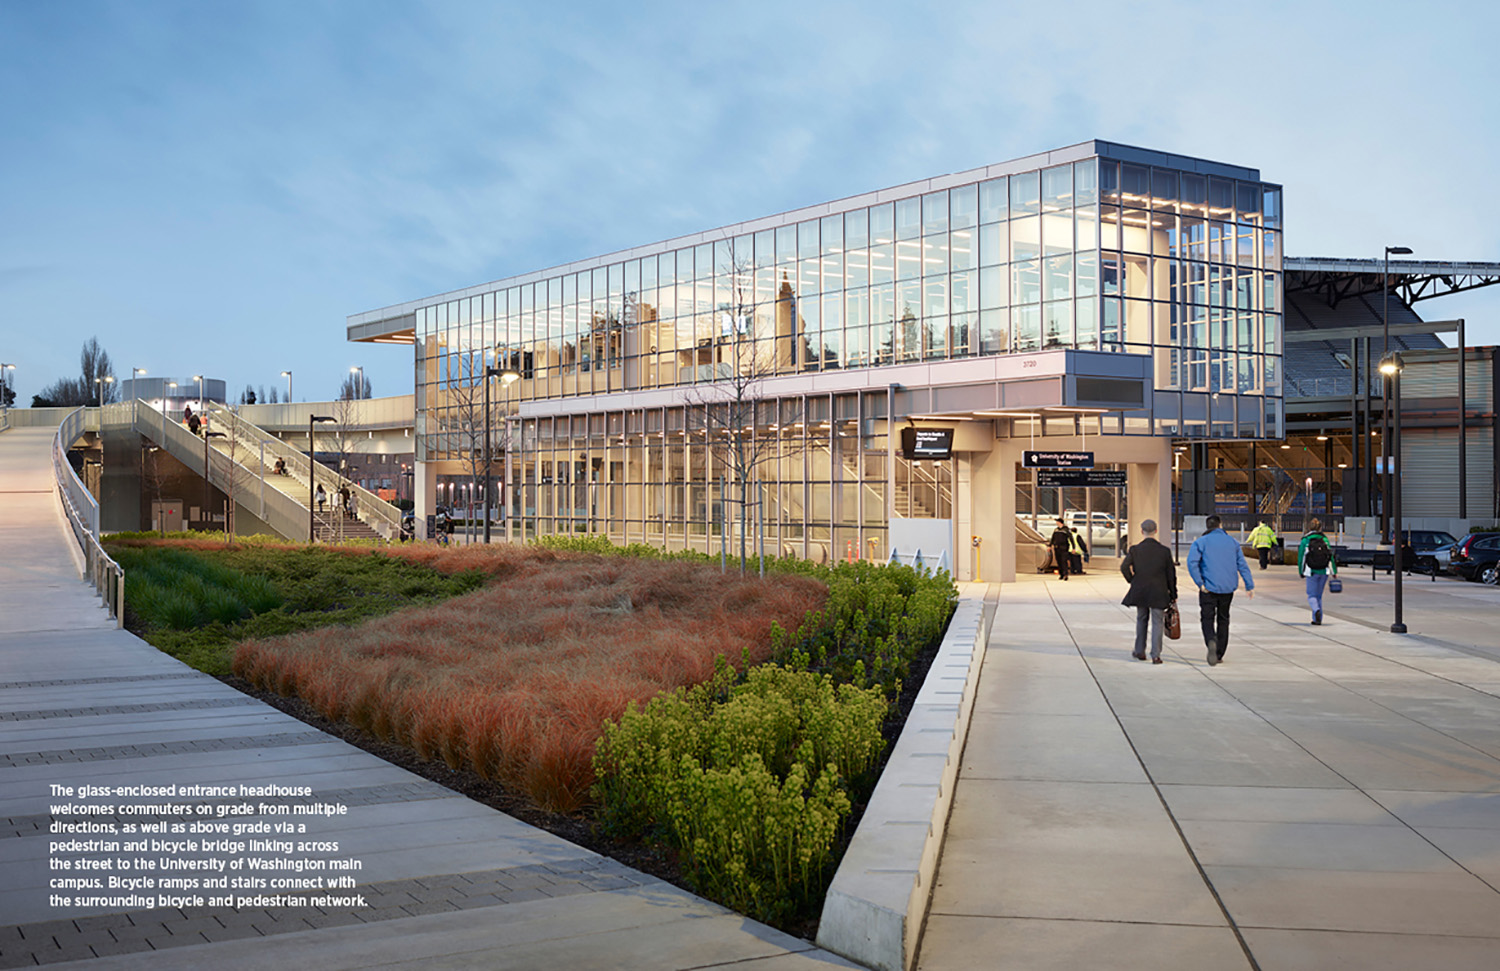 The glass-enclosed entrance headhouse welcomes commuters on grade from multiple directions, as well as above grade via a pedestrian and bicycle bridge linking across the street to the University of Washing Kevin Scott}